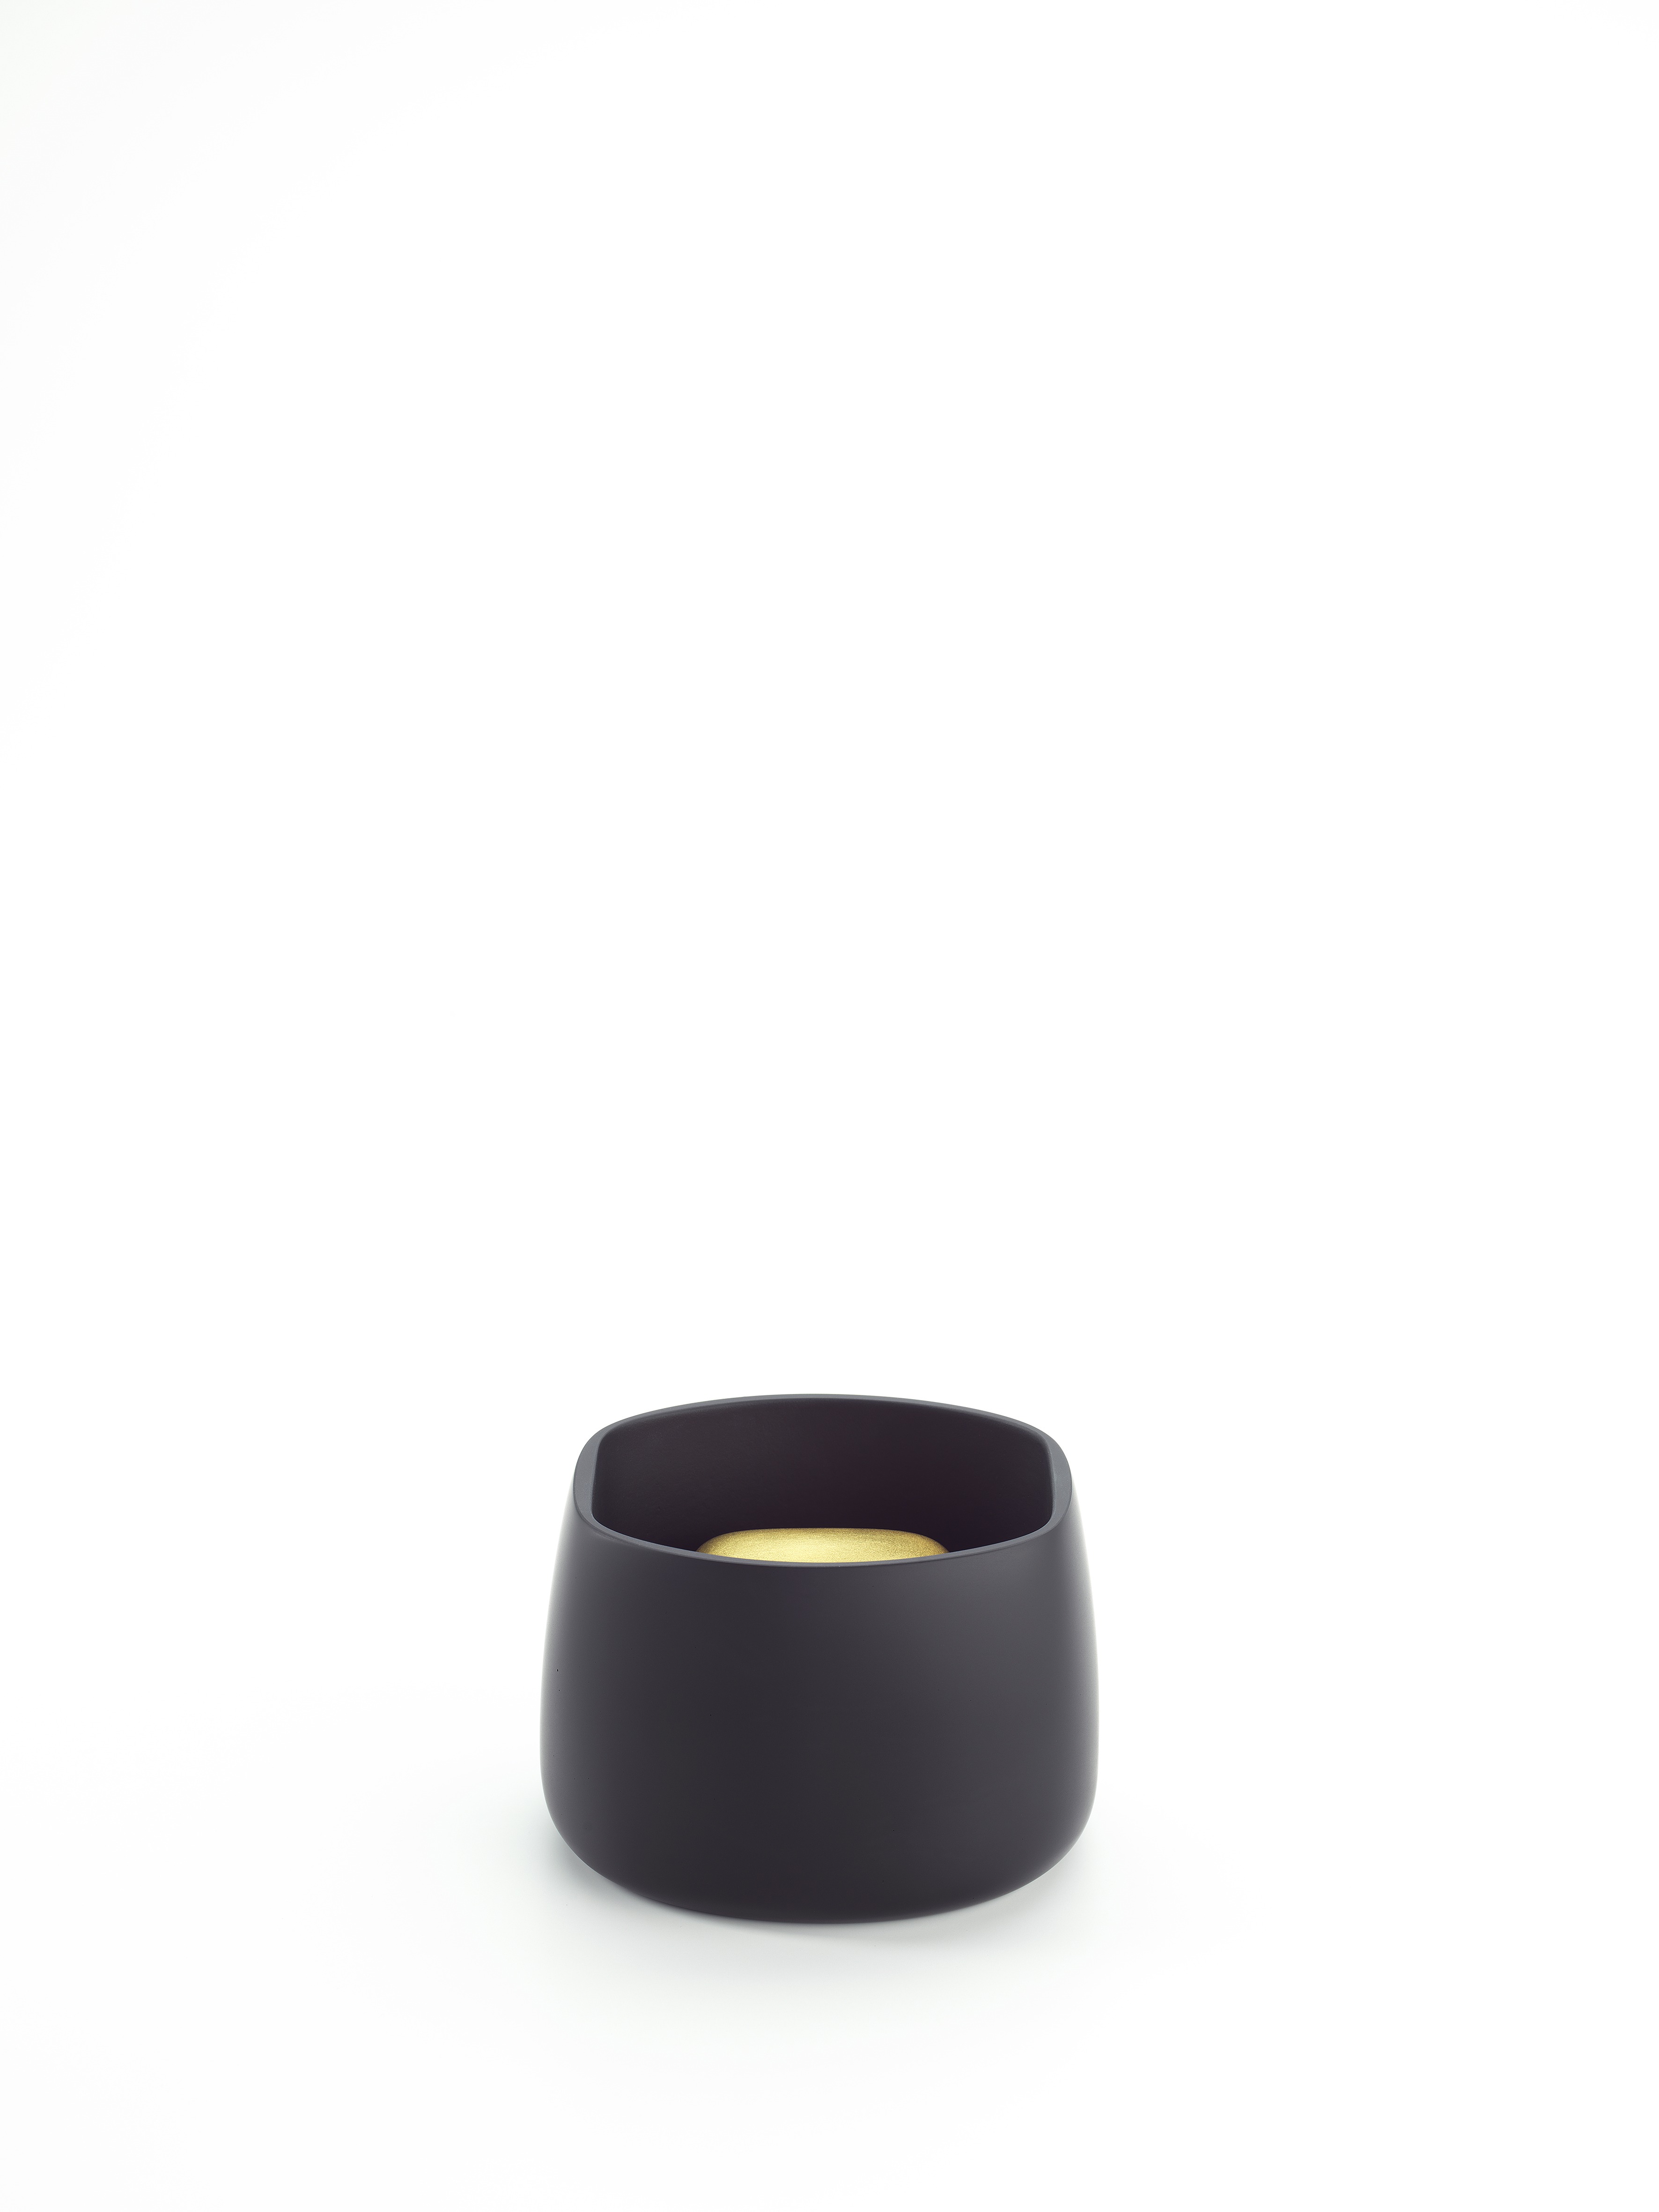 Contained Box (Soft Oval) - Black and Gold